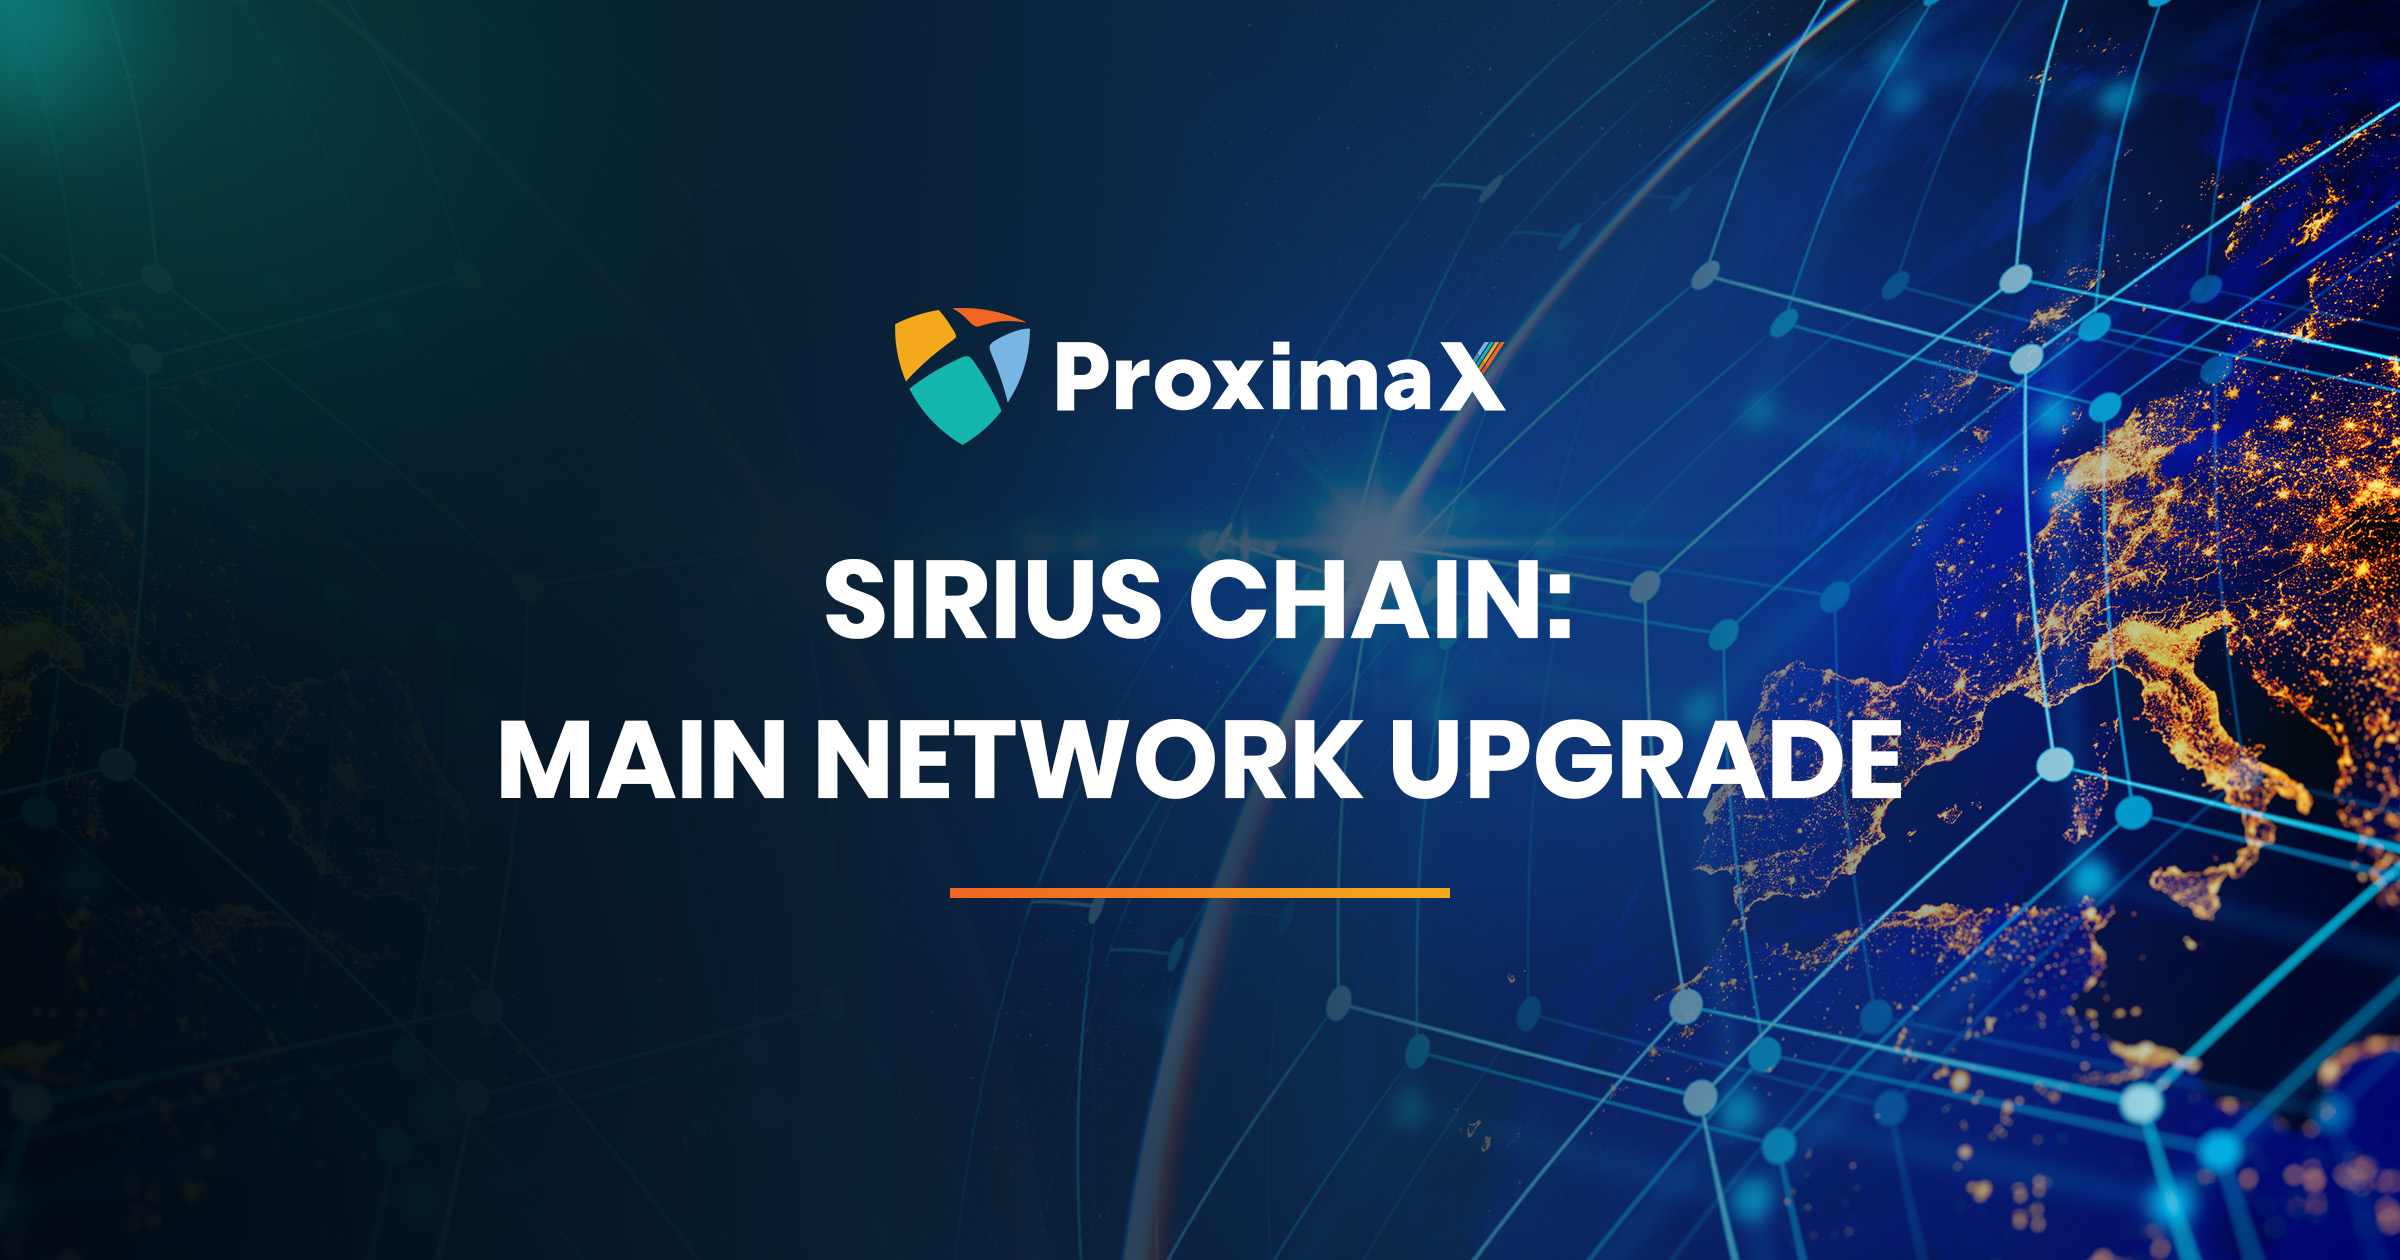 ProximaX Sirius Chain Public Network (MainNet) Version and Software Upgrade